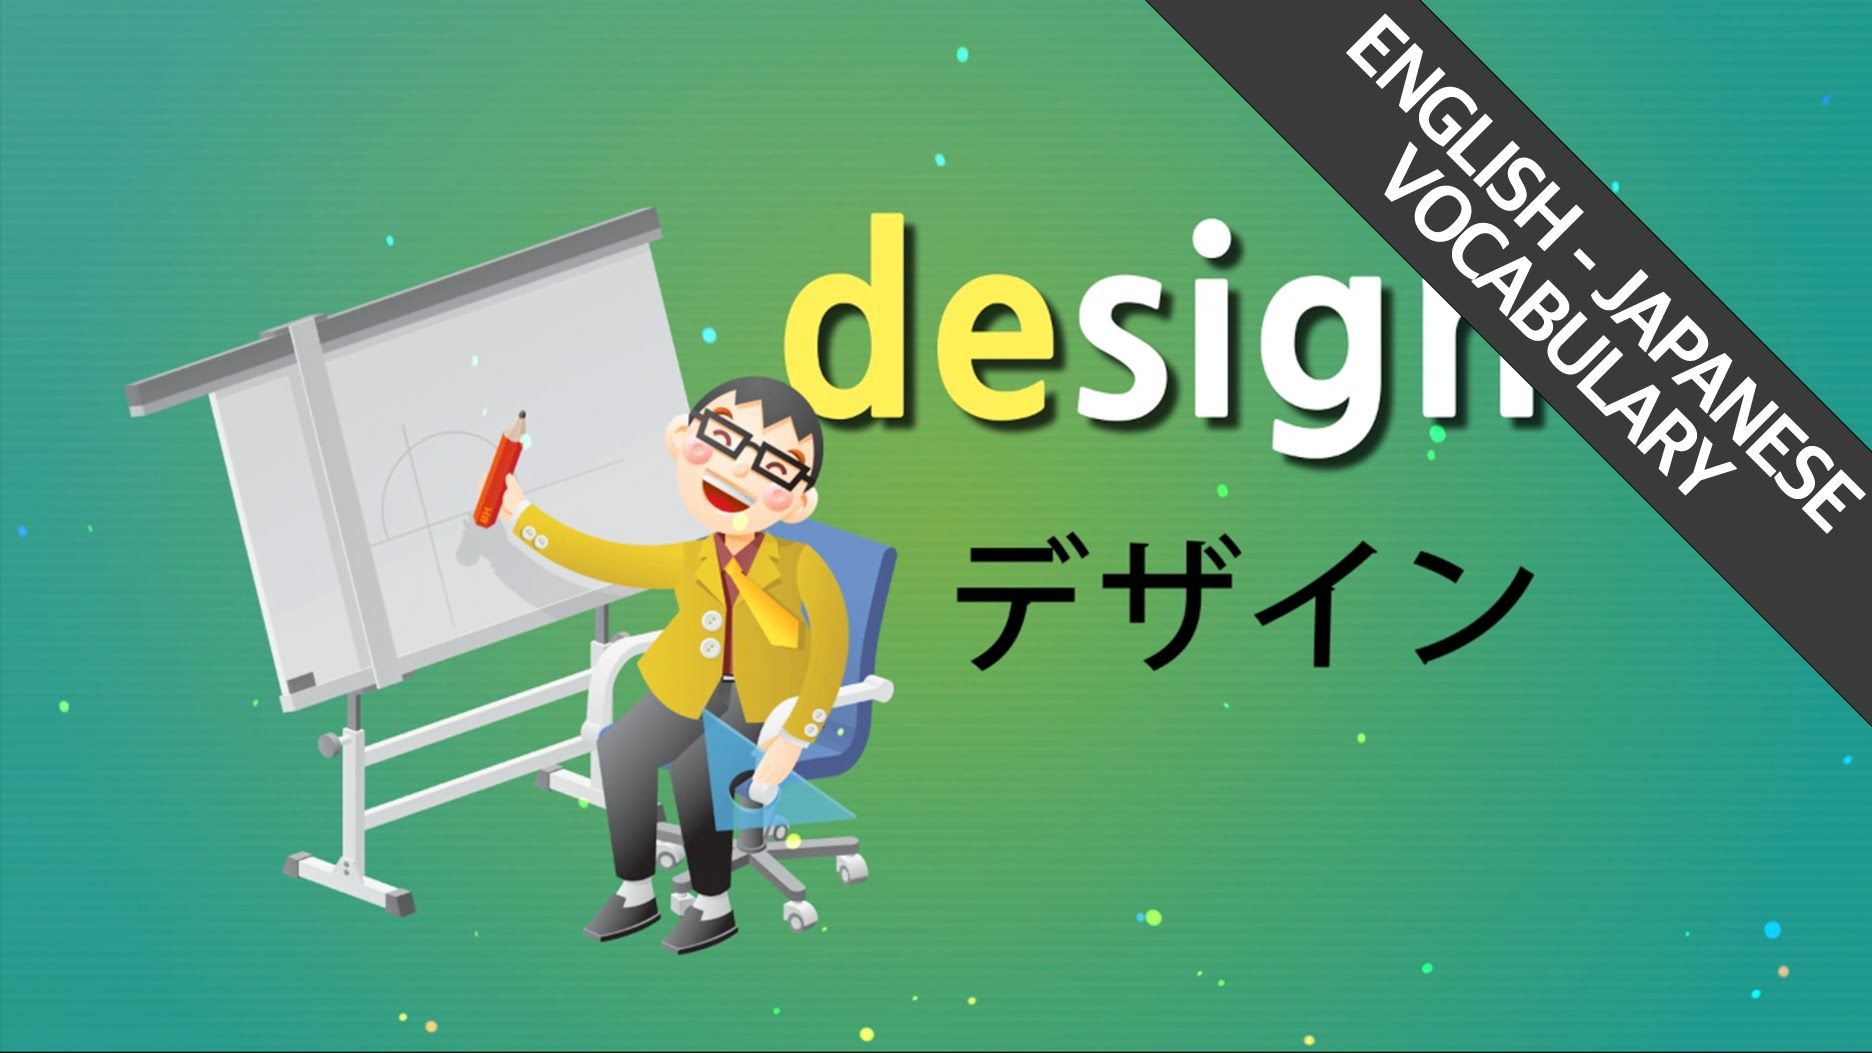 Learn Japanese Vocabulary With Songs